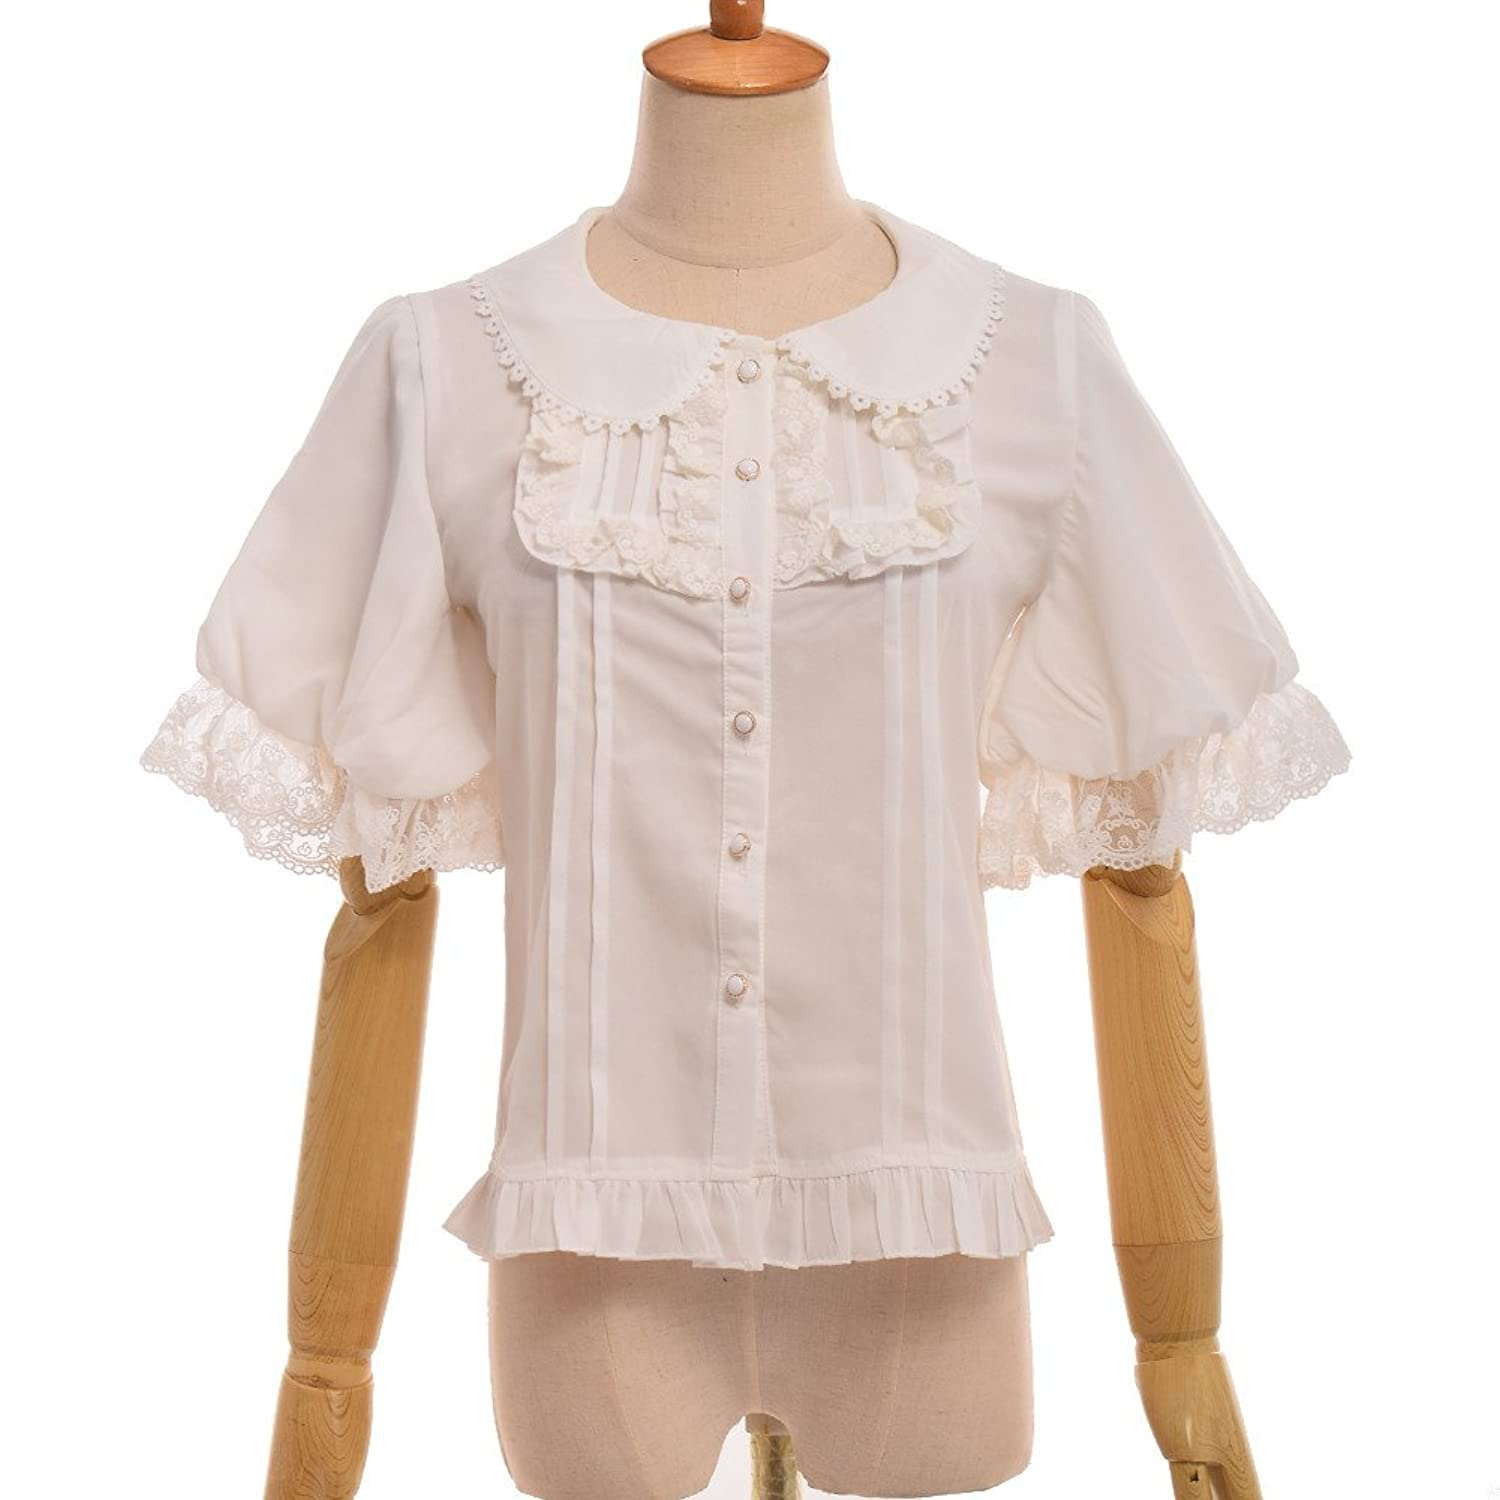 Victorian Clothing, Costumes & 1800s Fashion GRACEART Victorian Puff Sleeve Chiffon Shirt Blouse  AT vintagedancer.com